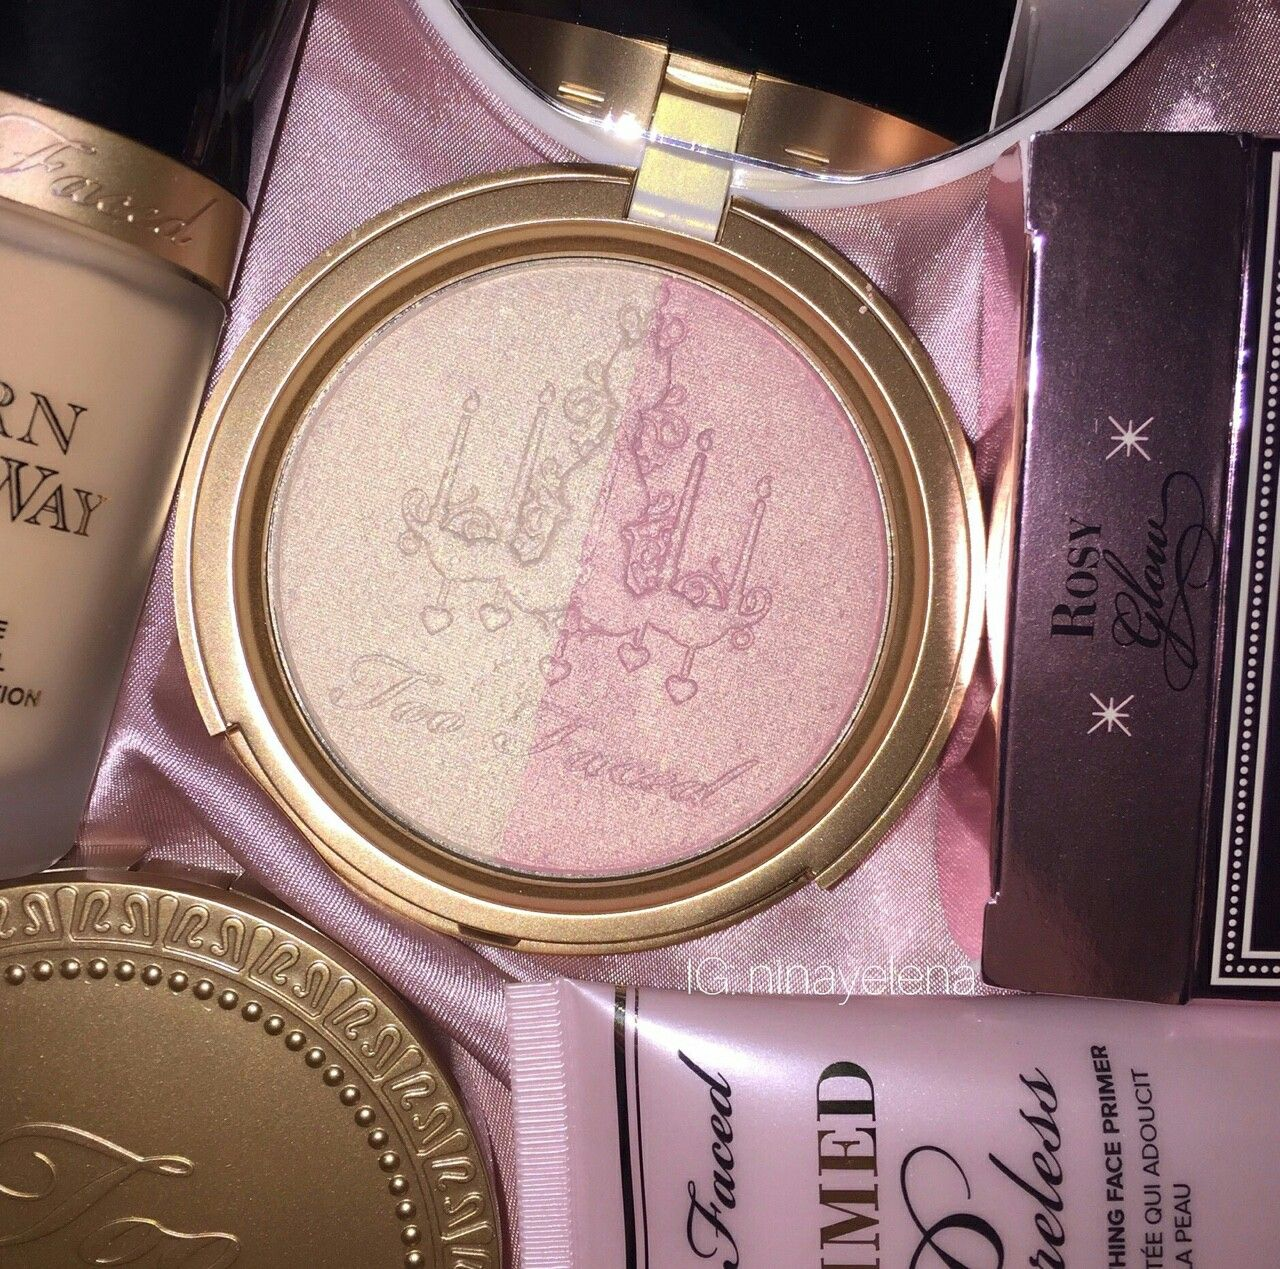 New In: MAC x Mariah Carey Collection - Made From Beauty